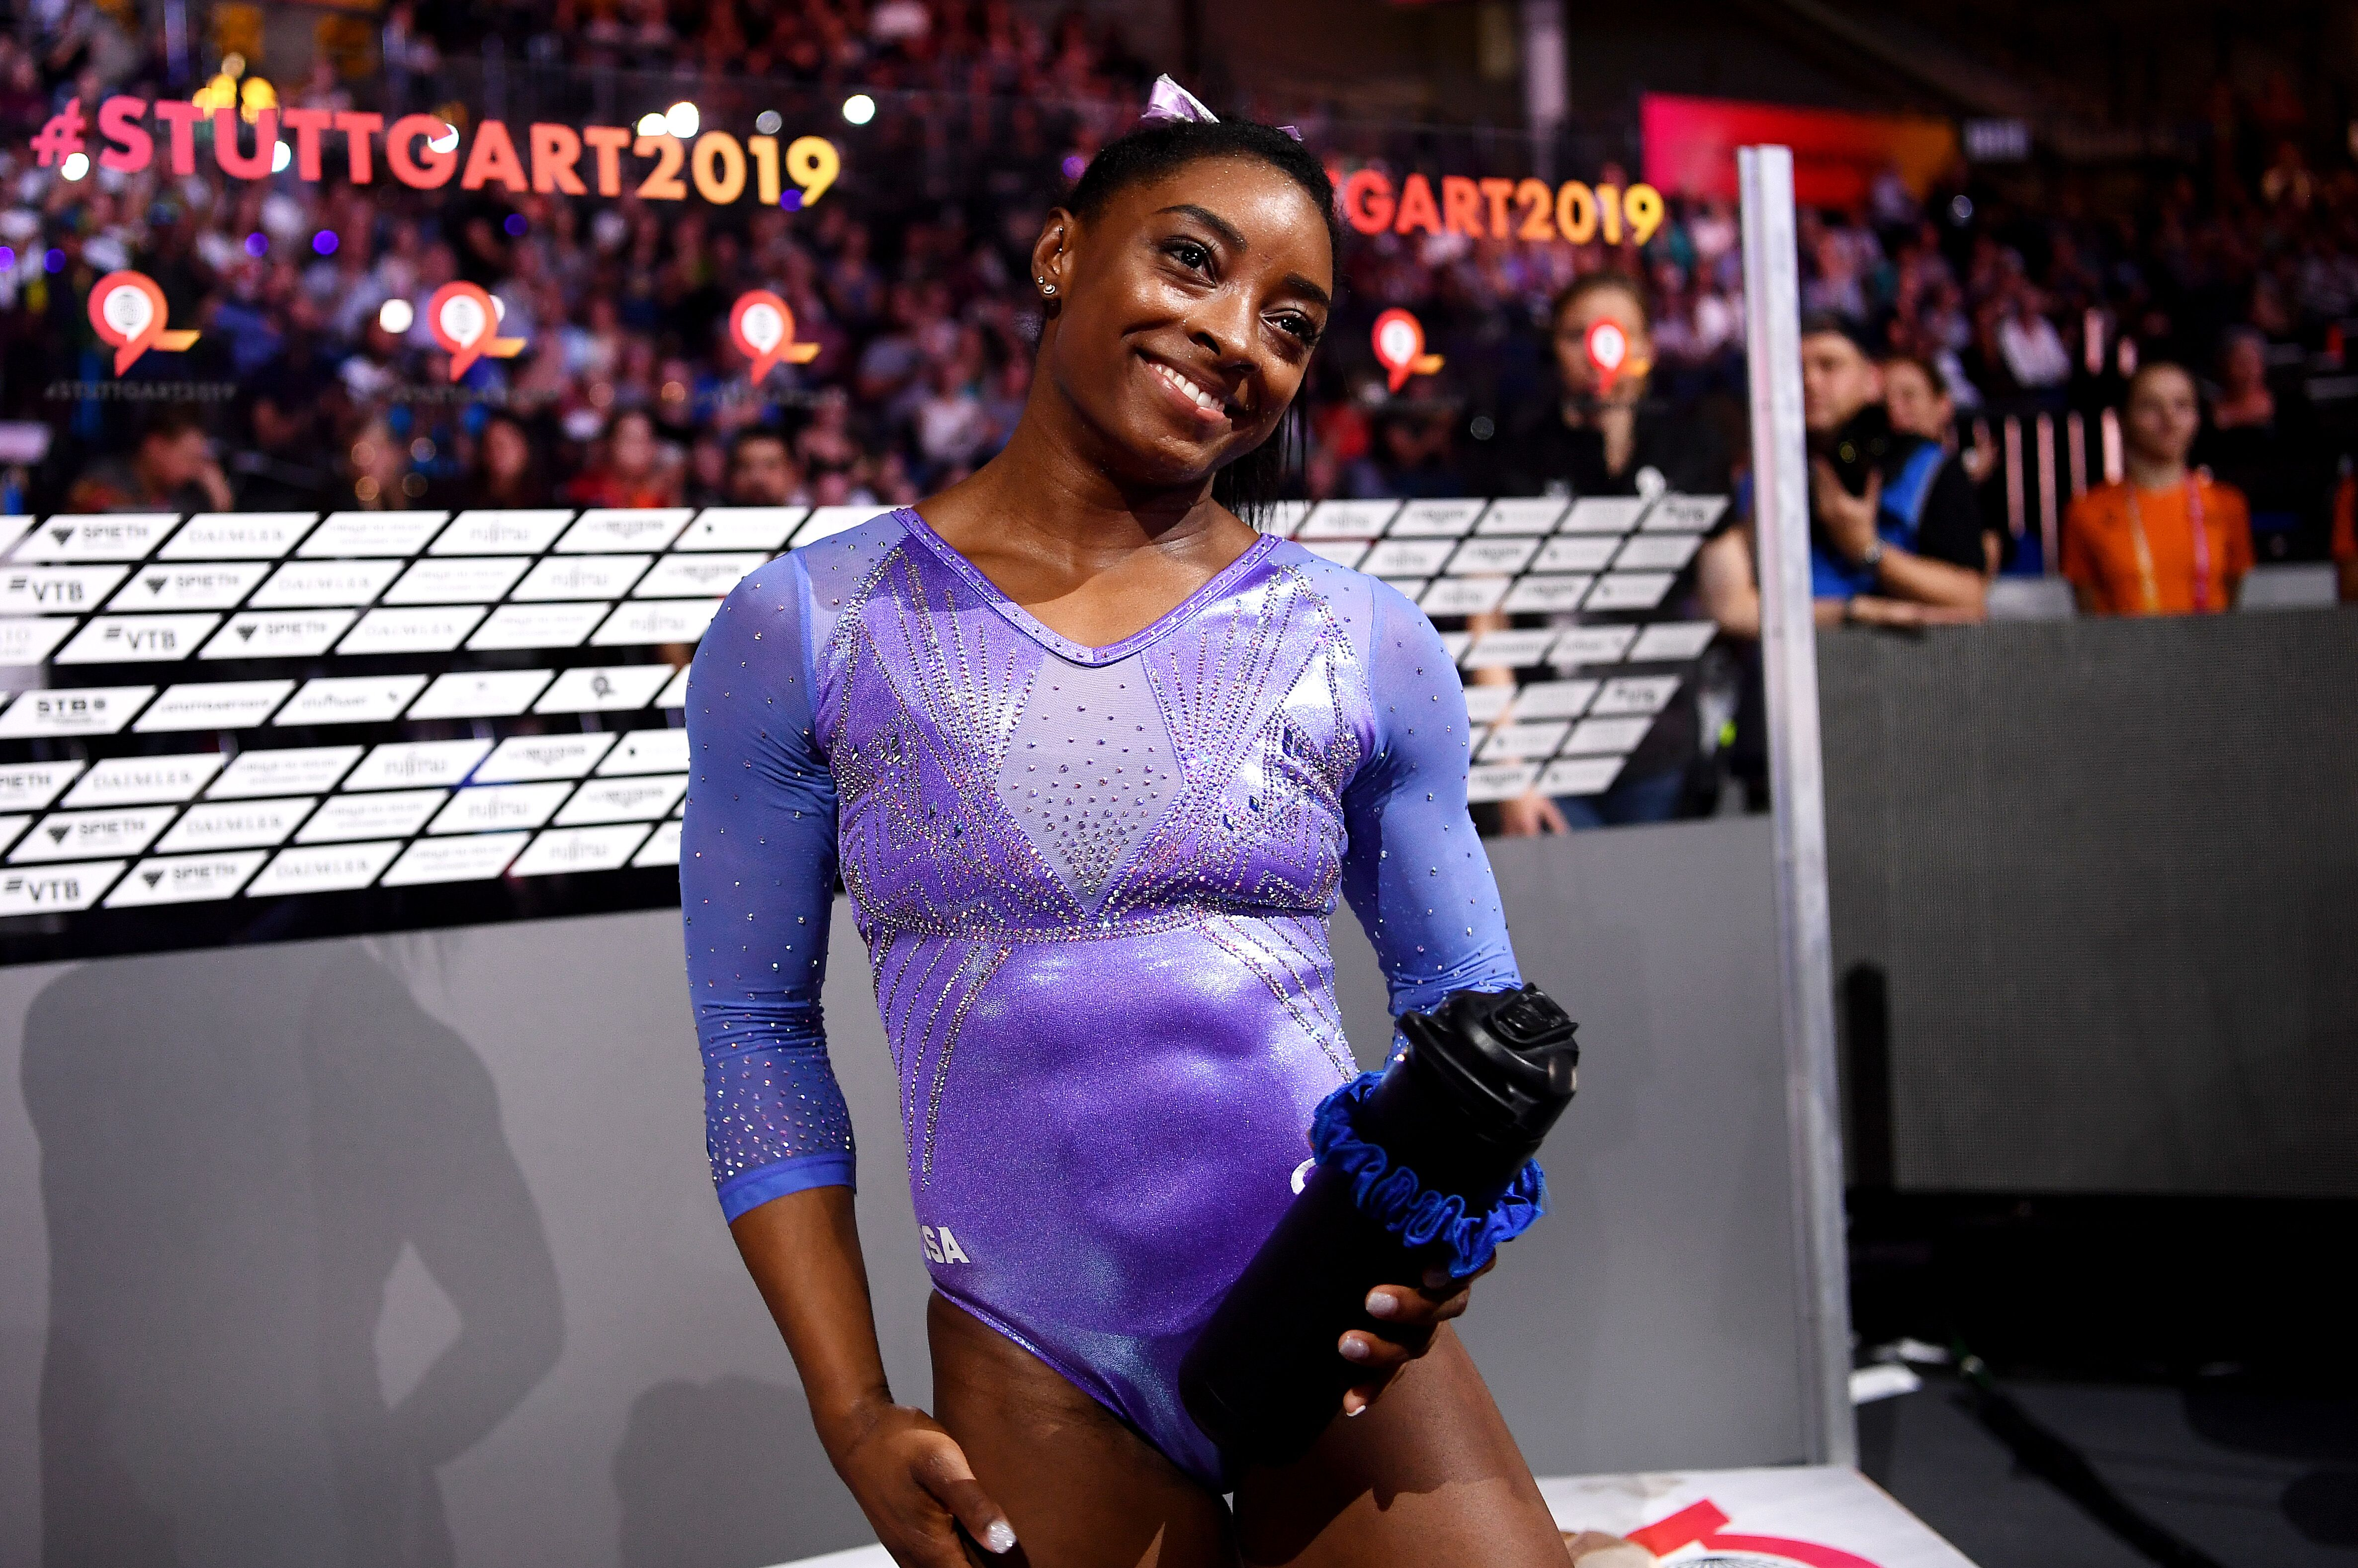 Simone Biles of The United States celebrates winning gold in Women's Floor Final during day 10 of the 49th FIG Artistic Gymnastics World Championships at Hanns-Martin-Schleyer-Halle on October 13, 2019 in Stuttgart, Germany.   Source: Getty Images